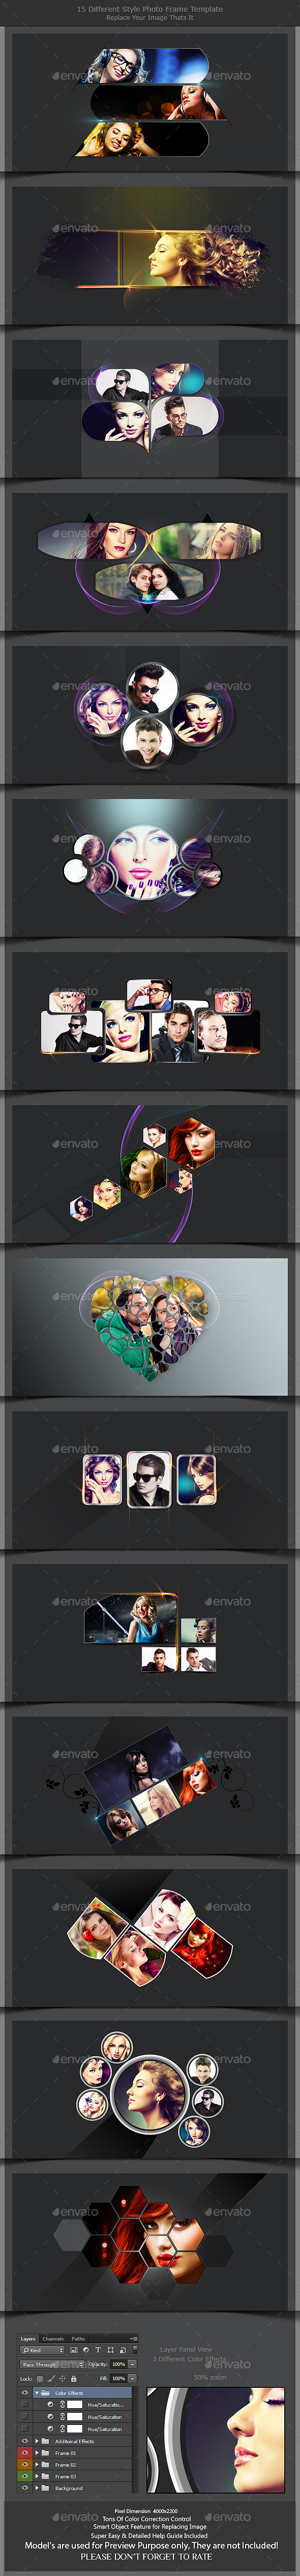 GraphicRiver 15 Different Styles Photo Frame Template 10925154